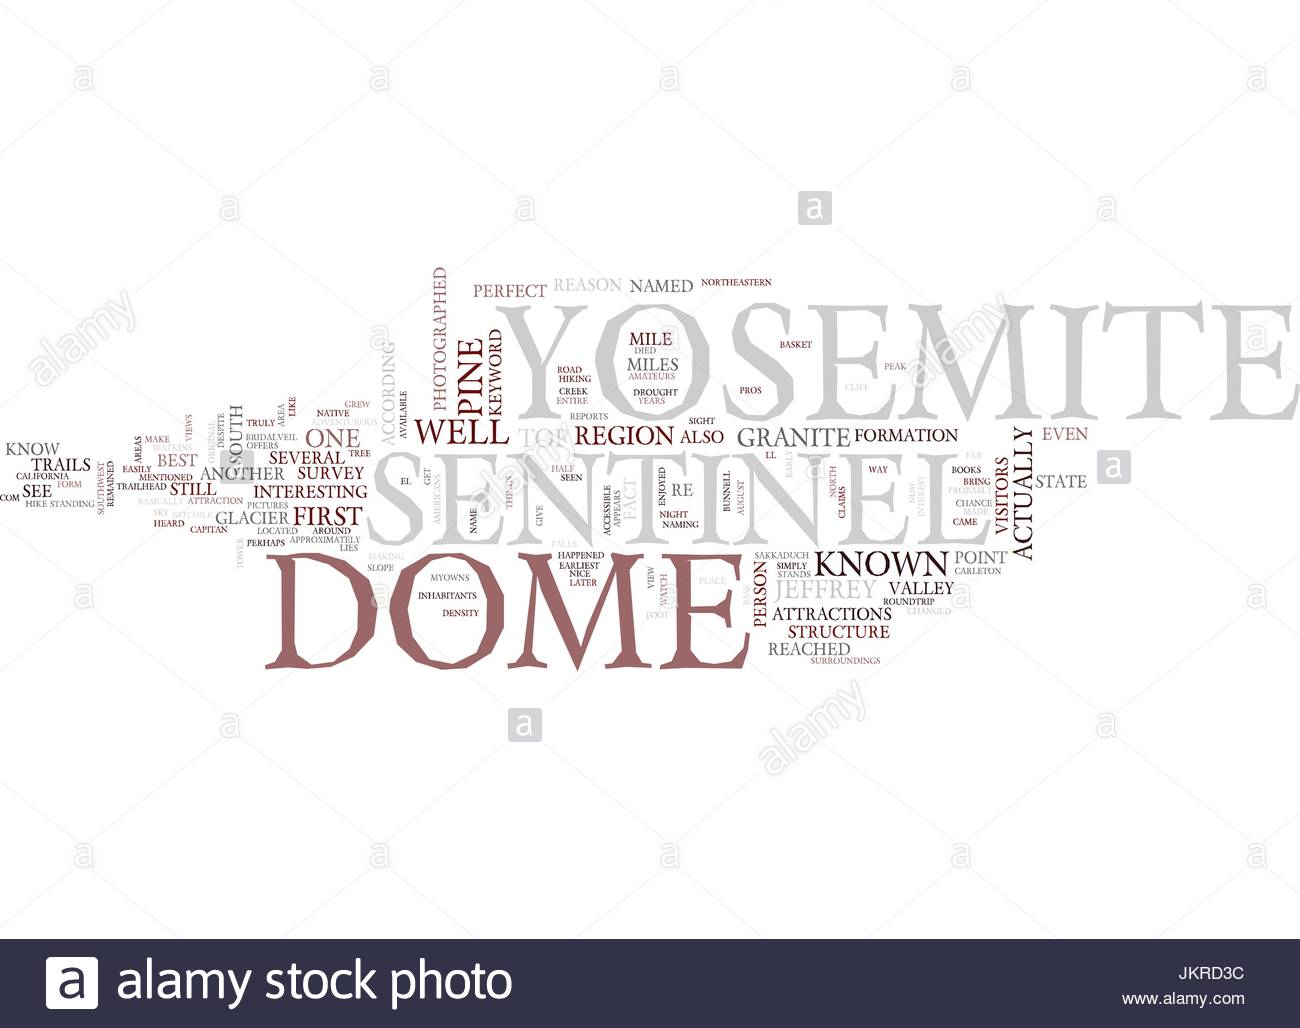 YOSEMITE SENTINEL Text Background Word Cloud Concept Stock Vector 1300x1028